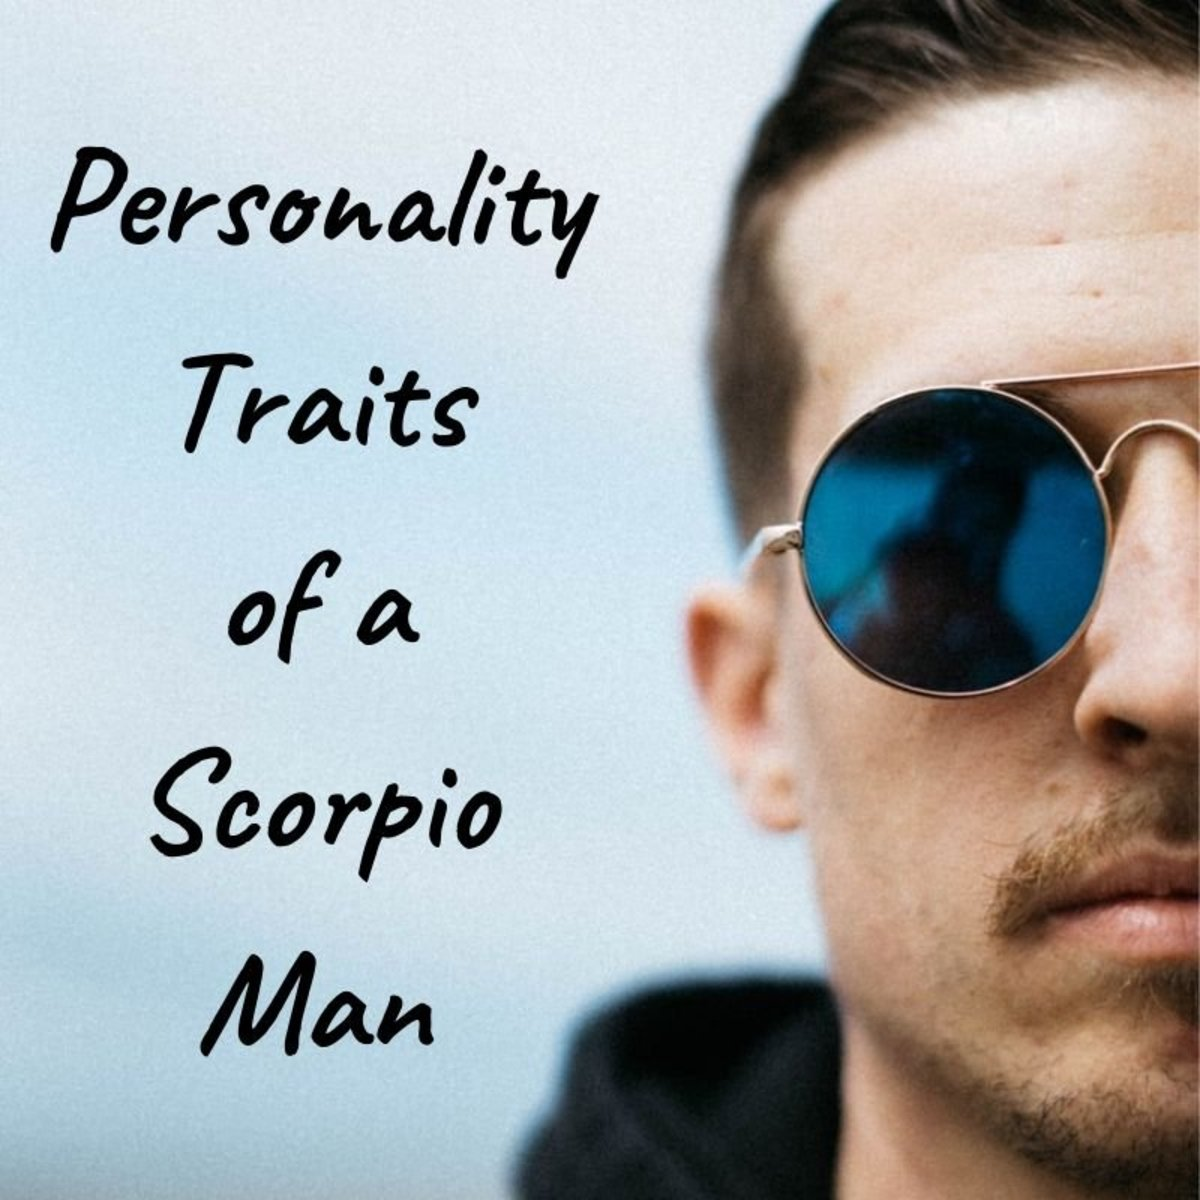 Common Scorpio Man Personality Traits (as Told by a Scorpio Guy)